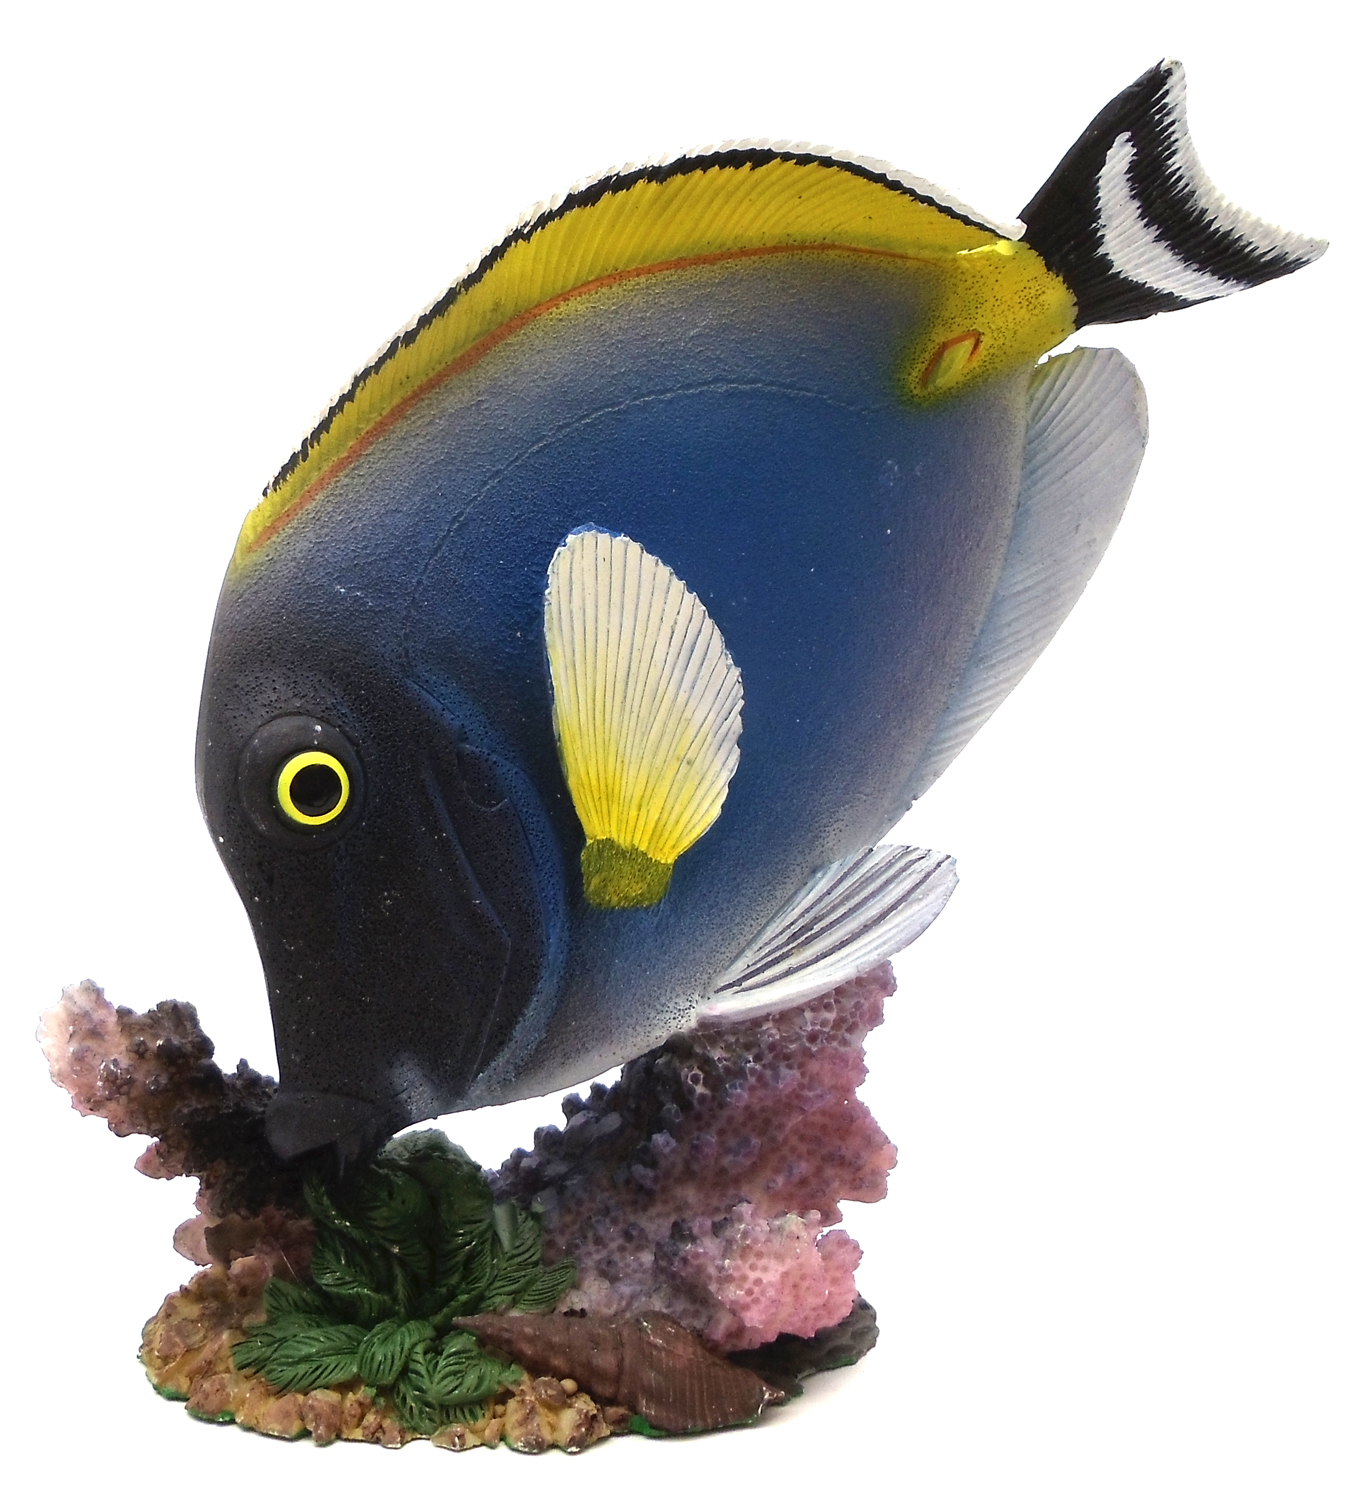 1255530-B - Resin Decorative Tropical Fish Statue - Blue